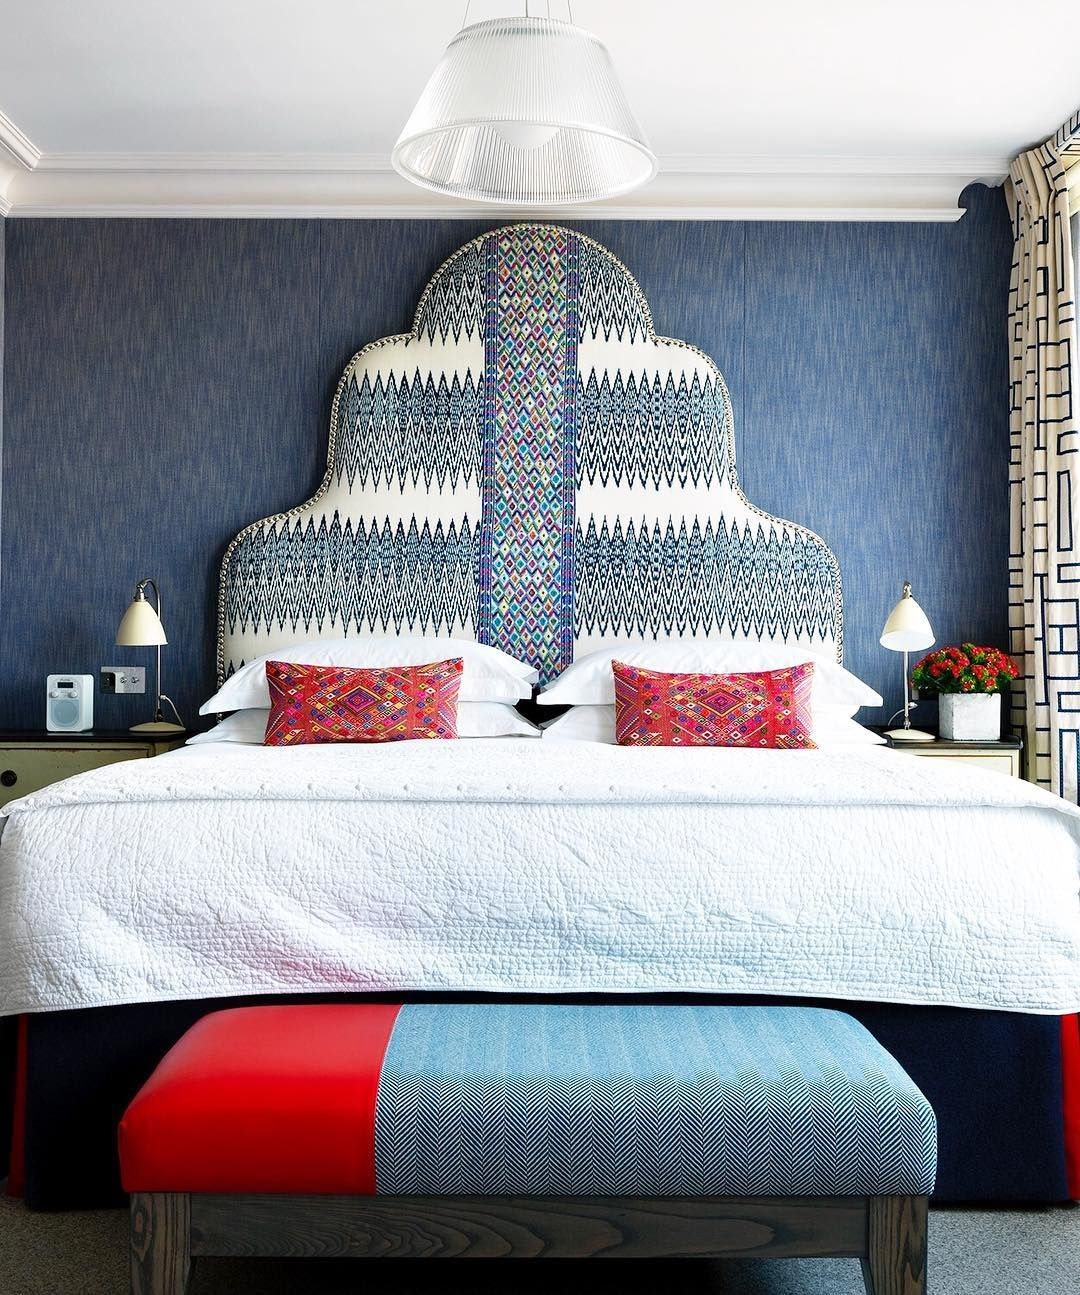 10 Luxury Bedroom Ideas Stunning Luxury Beds In Glamorous: A Collection Of Luxury Modern Classic Hotels Designed By